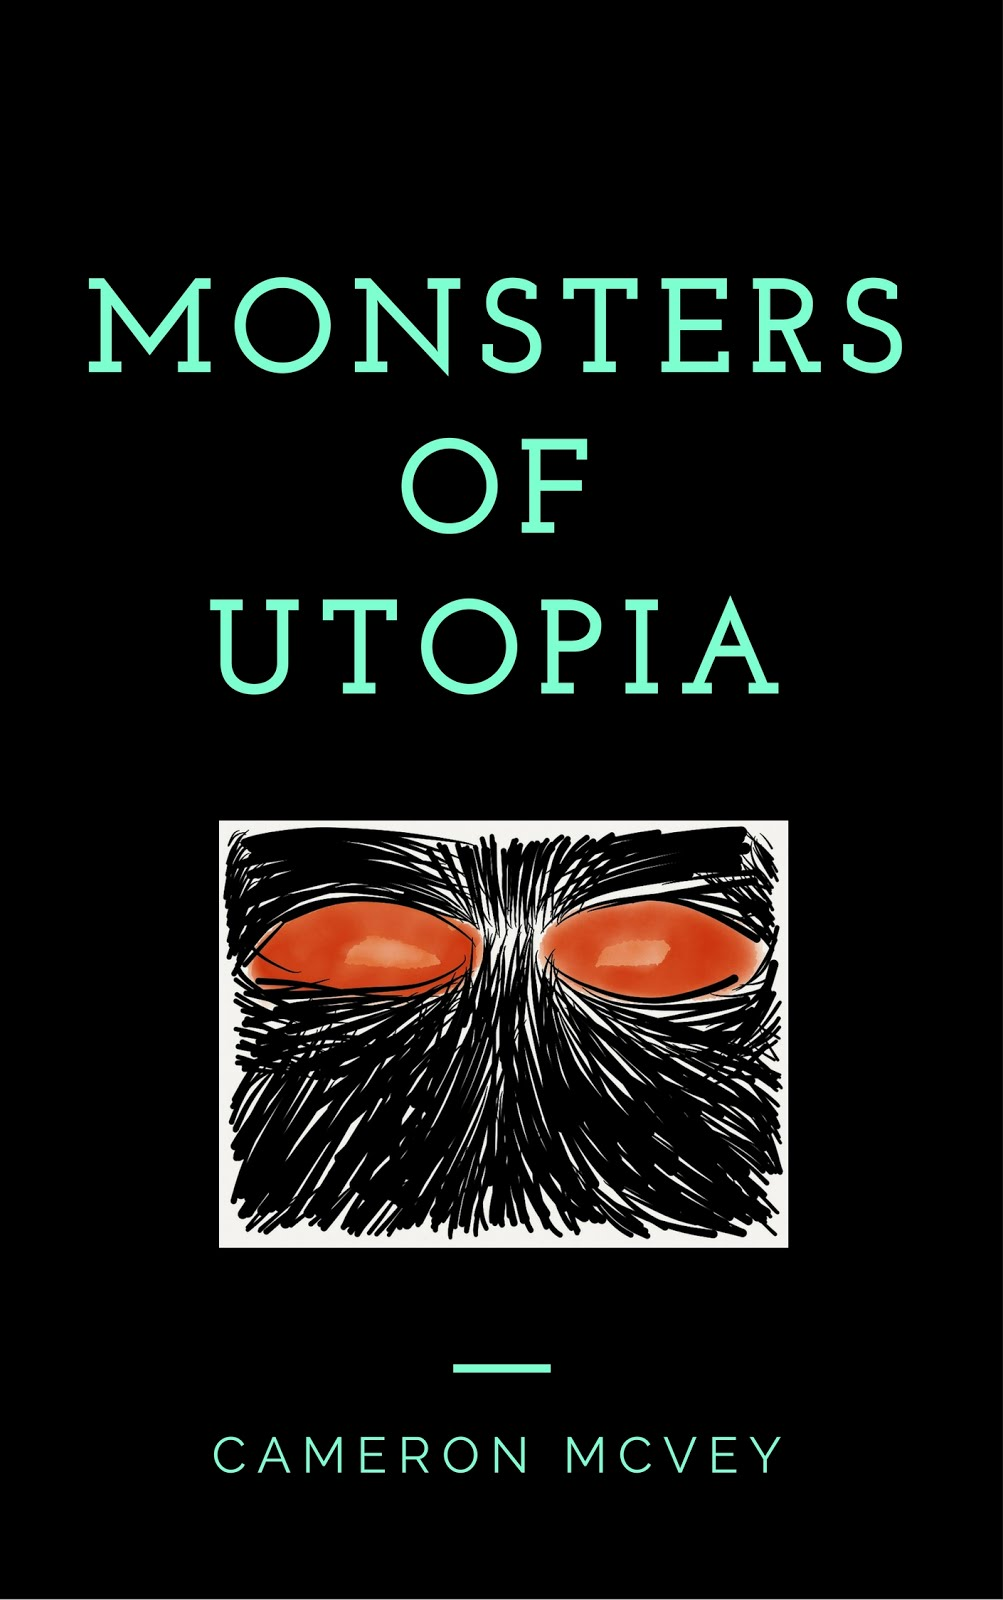 Monsters of Utopia